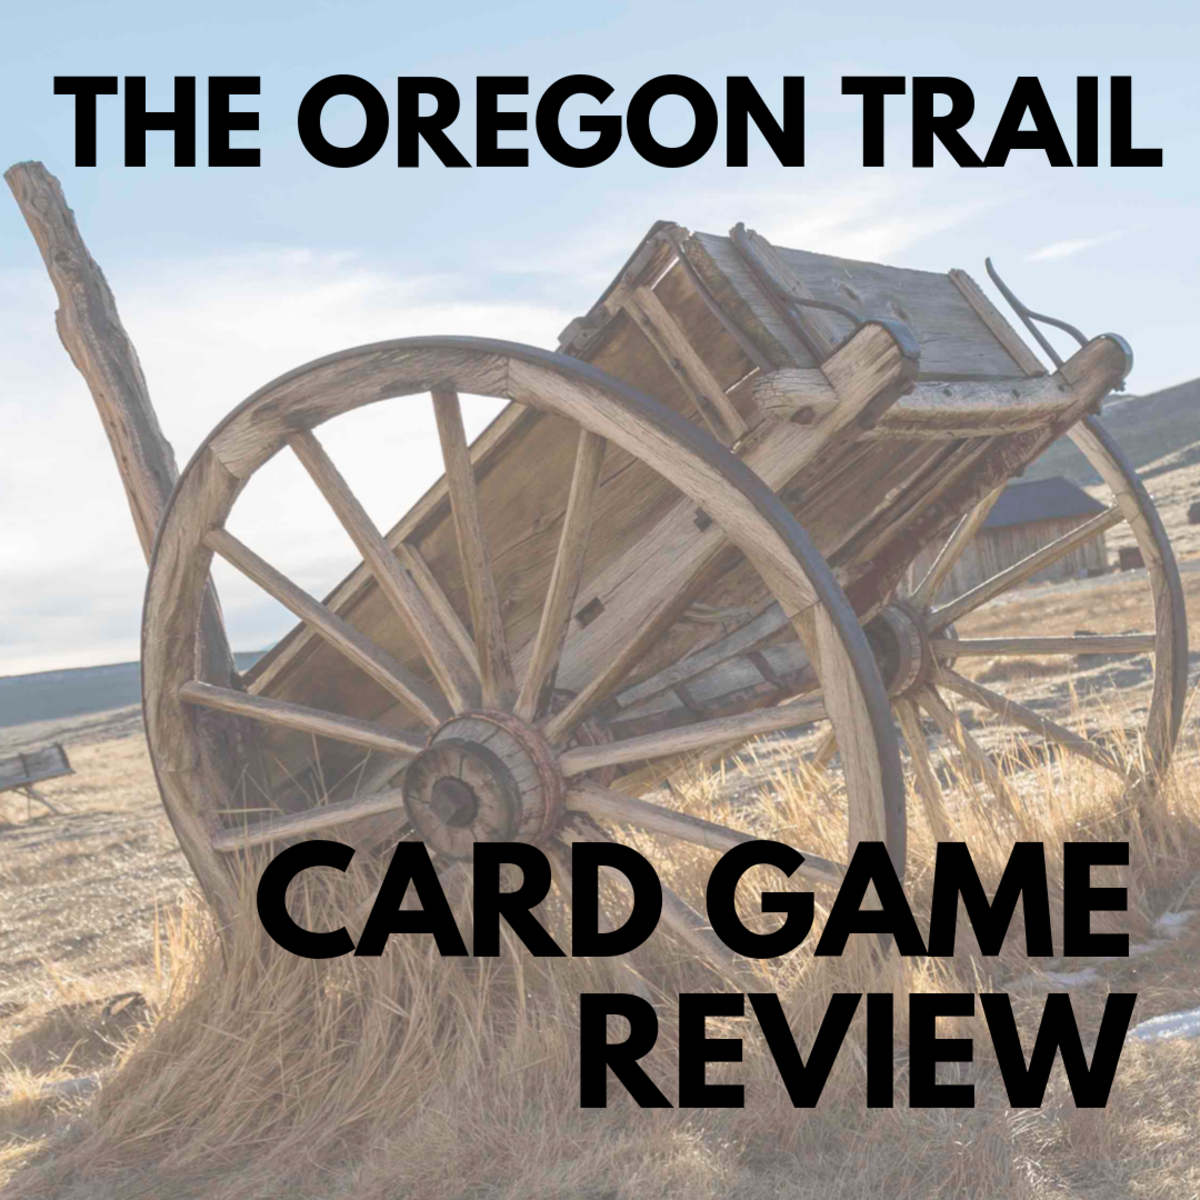 The Oregon Trail Card Game Review